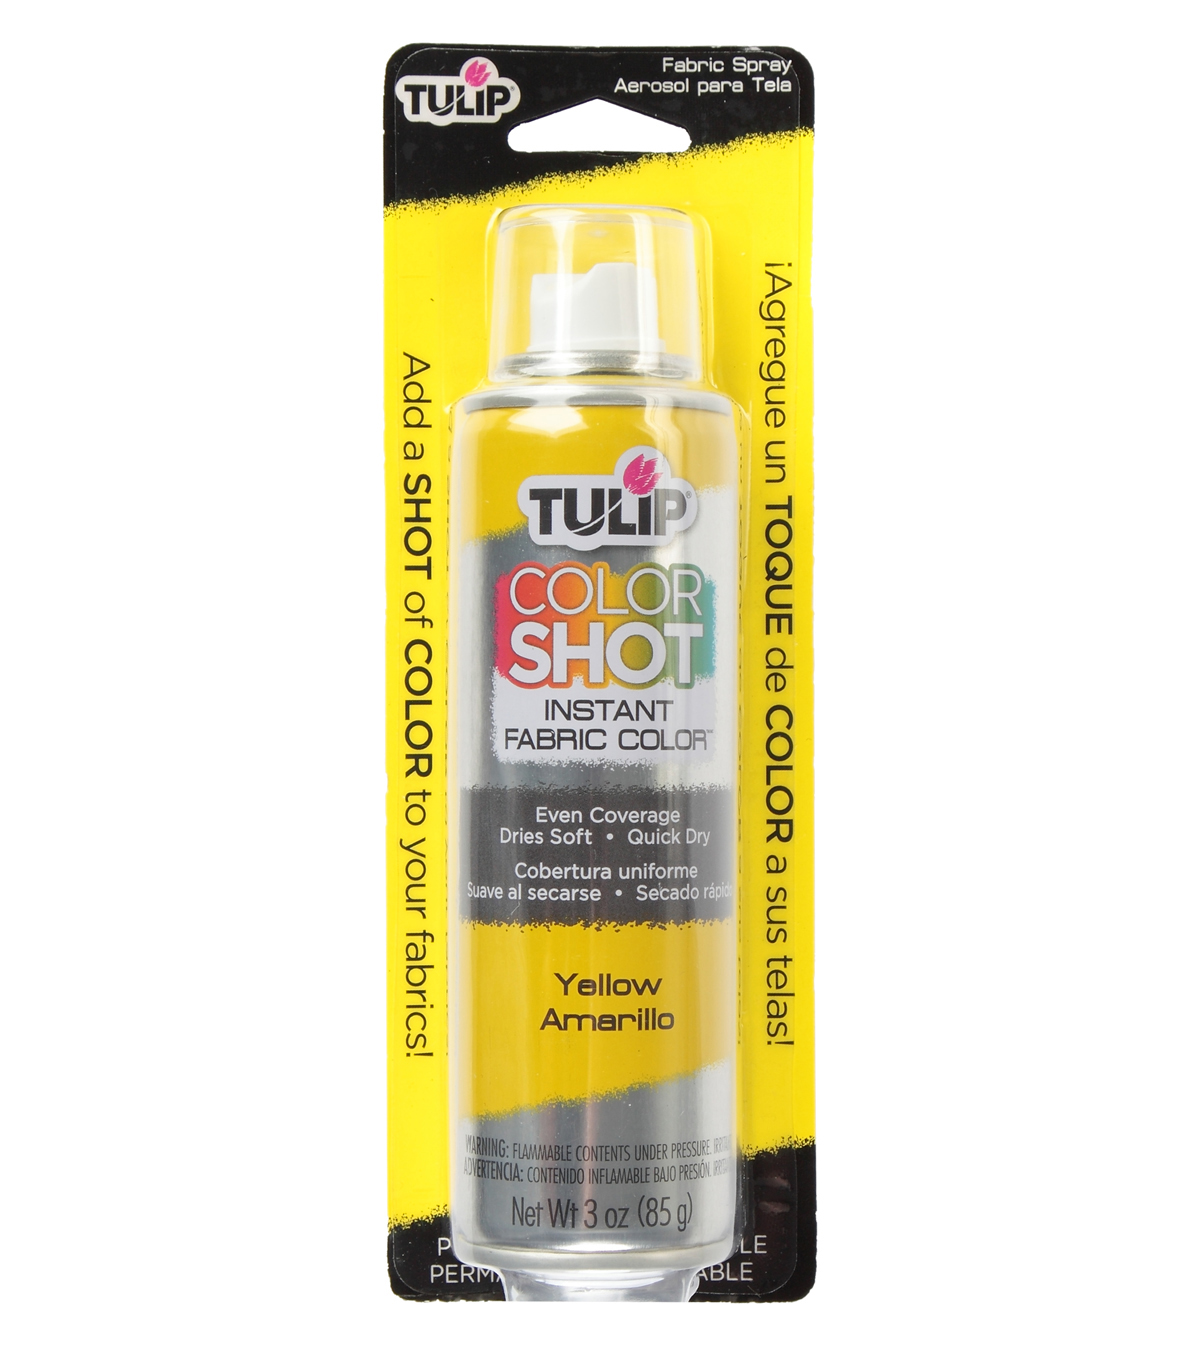 Tulip ColorShot Instant Fabric Color Spray 3oz, Yellow